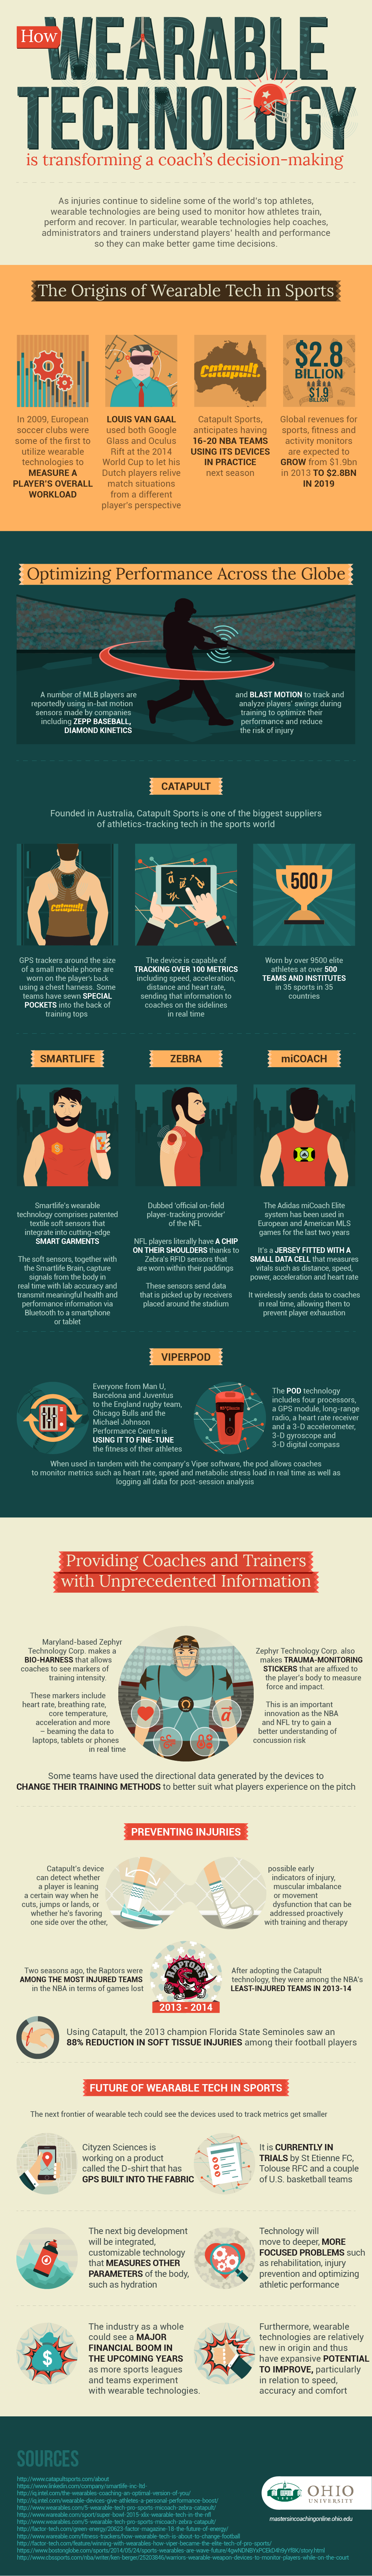 This is How A Coach's Decision Making is Being Affected by Wearable Tech - Infographic